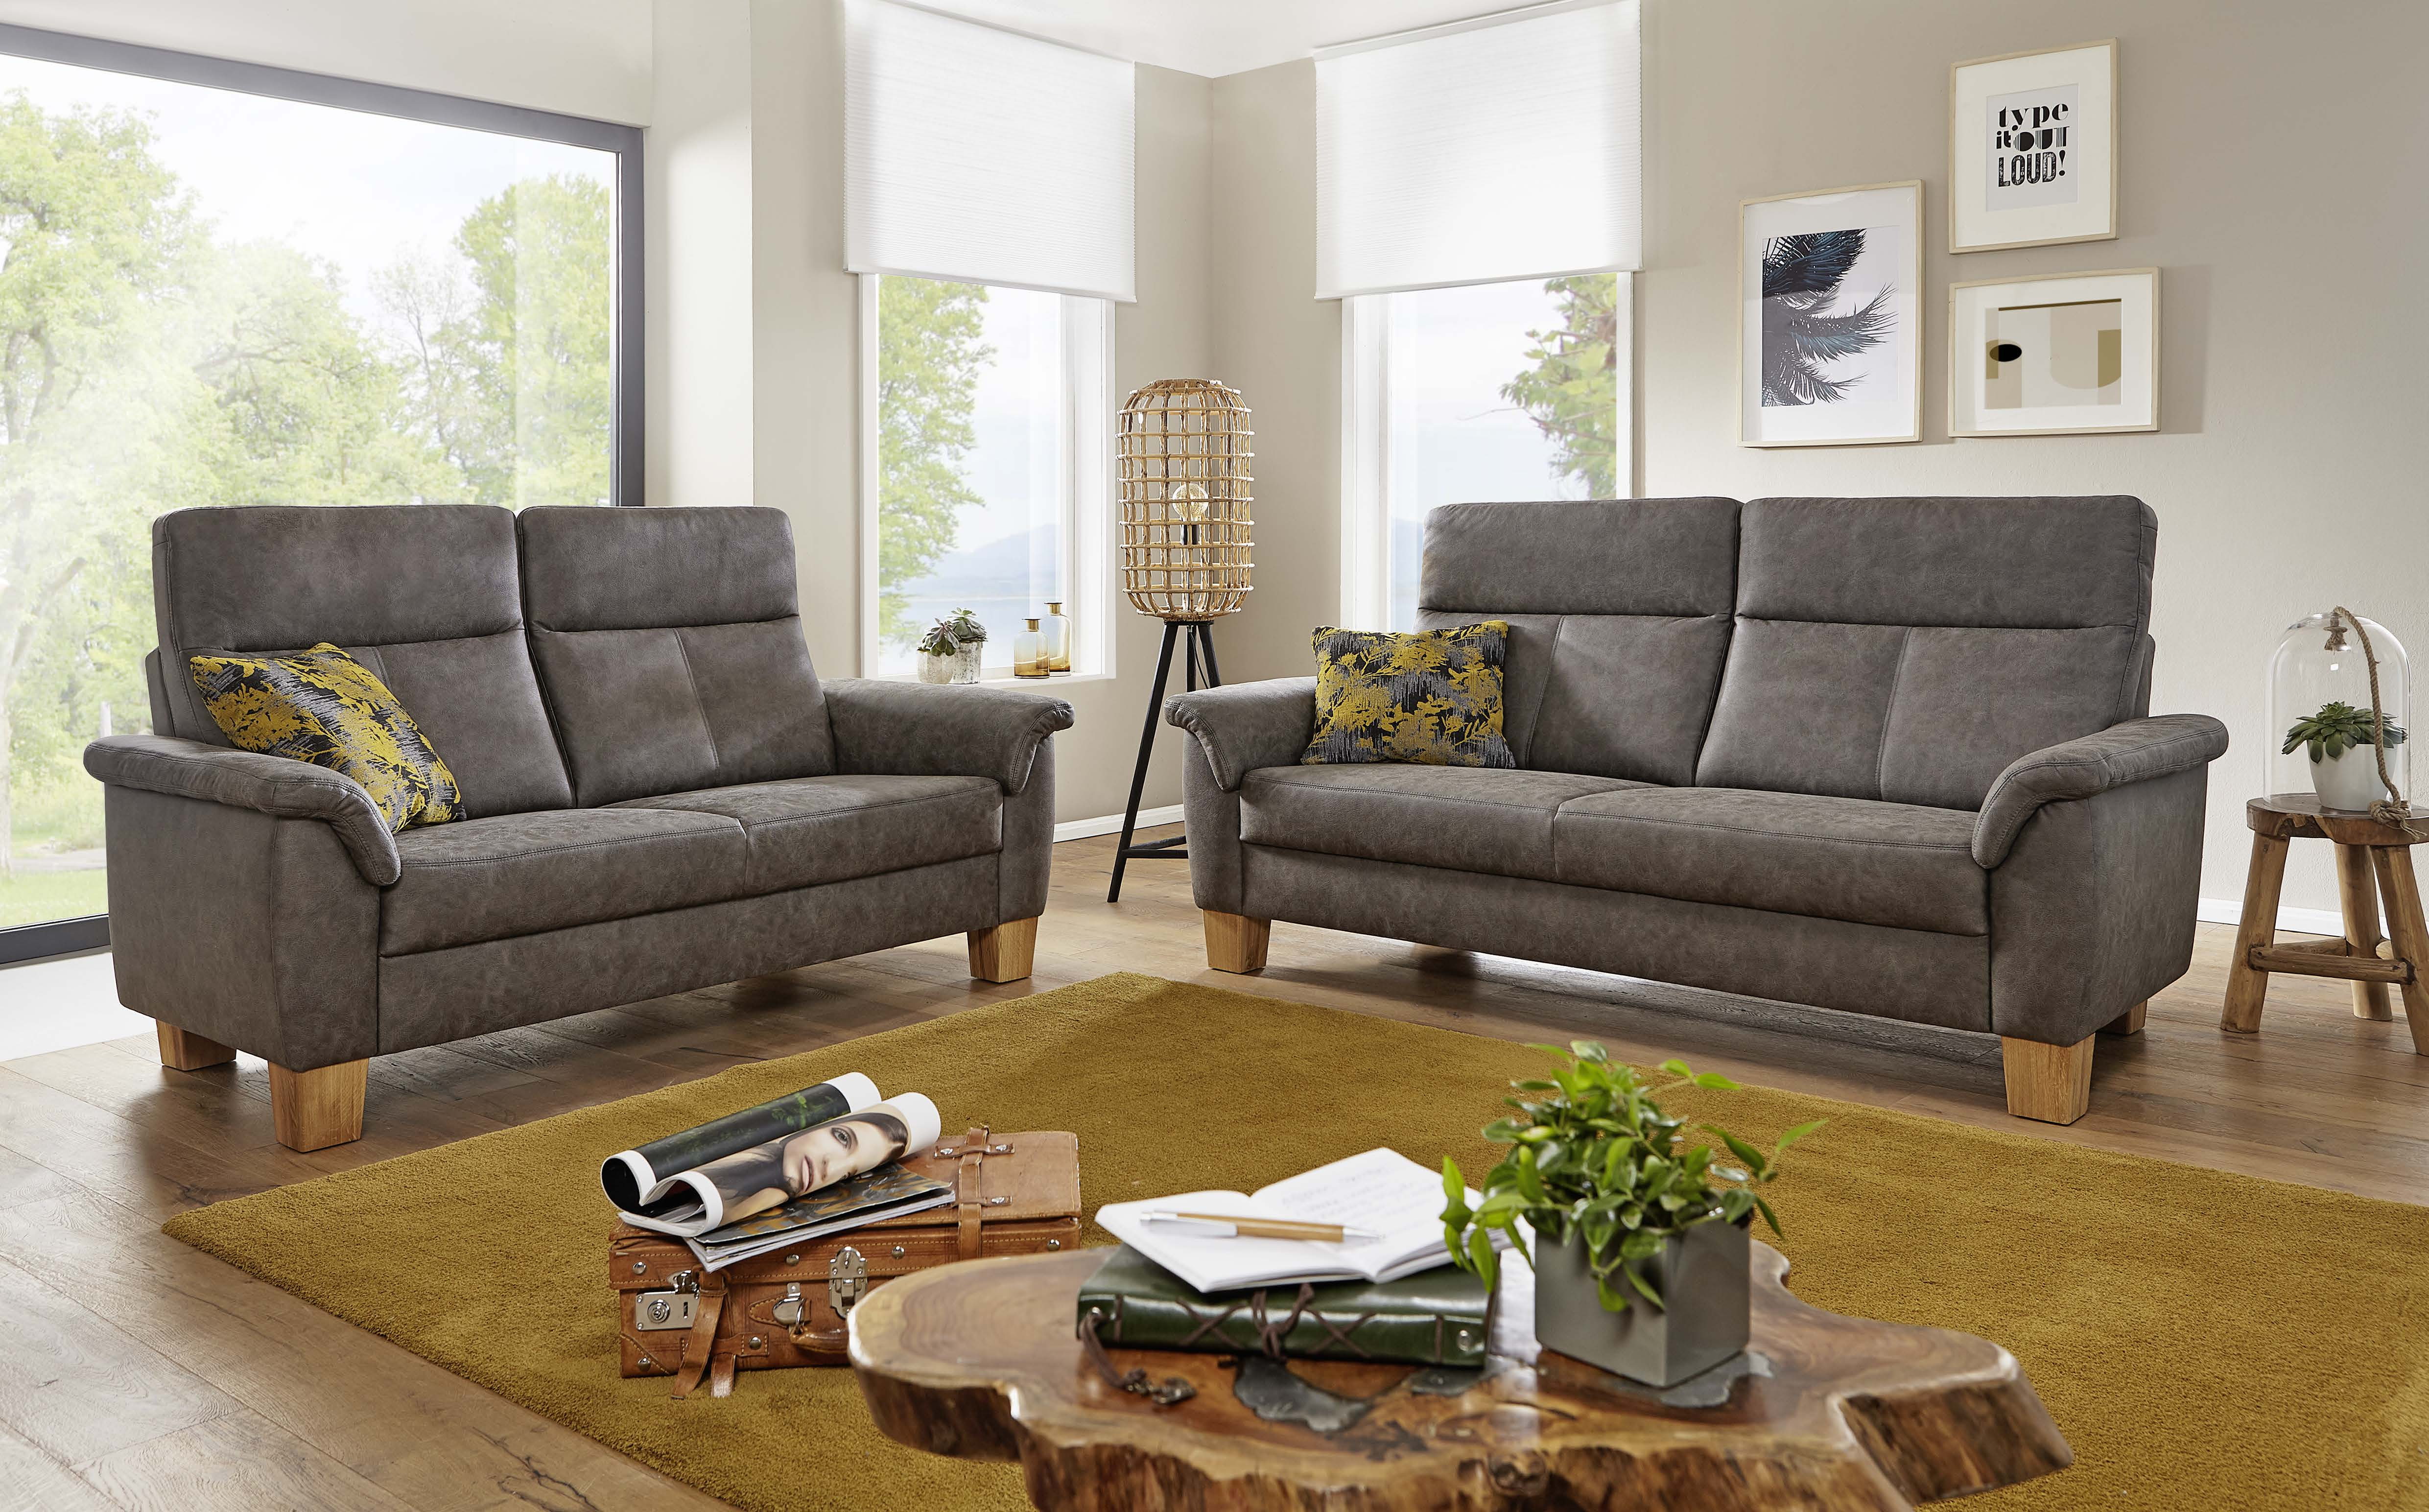 GARANT Collection Sofa 500 Comfort-Select